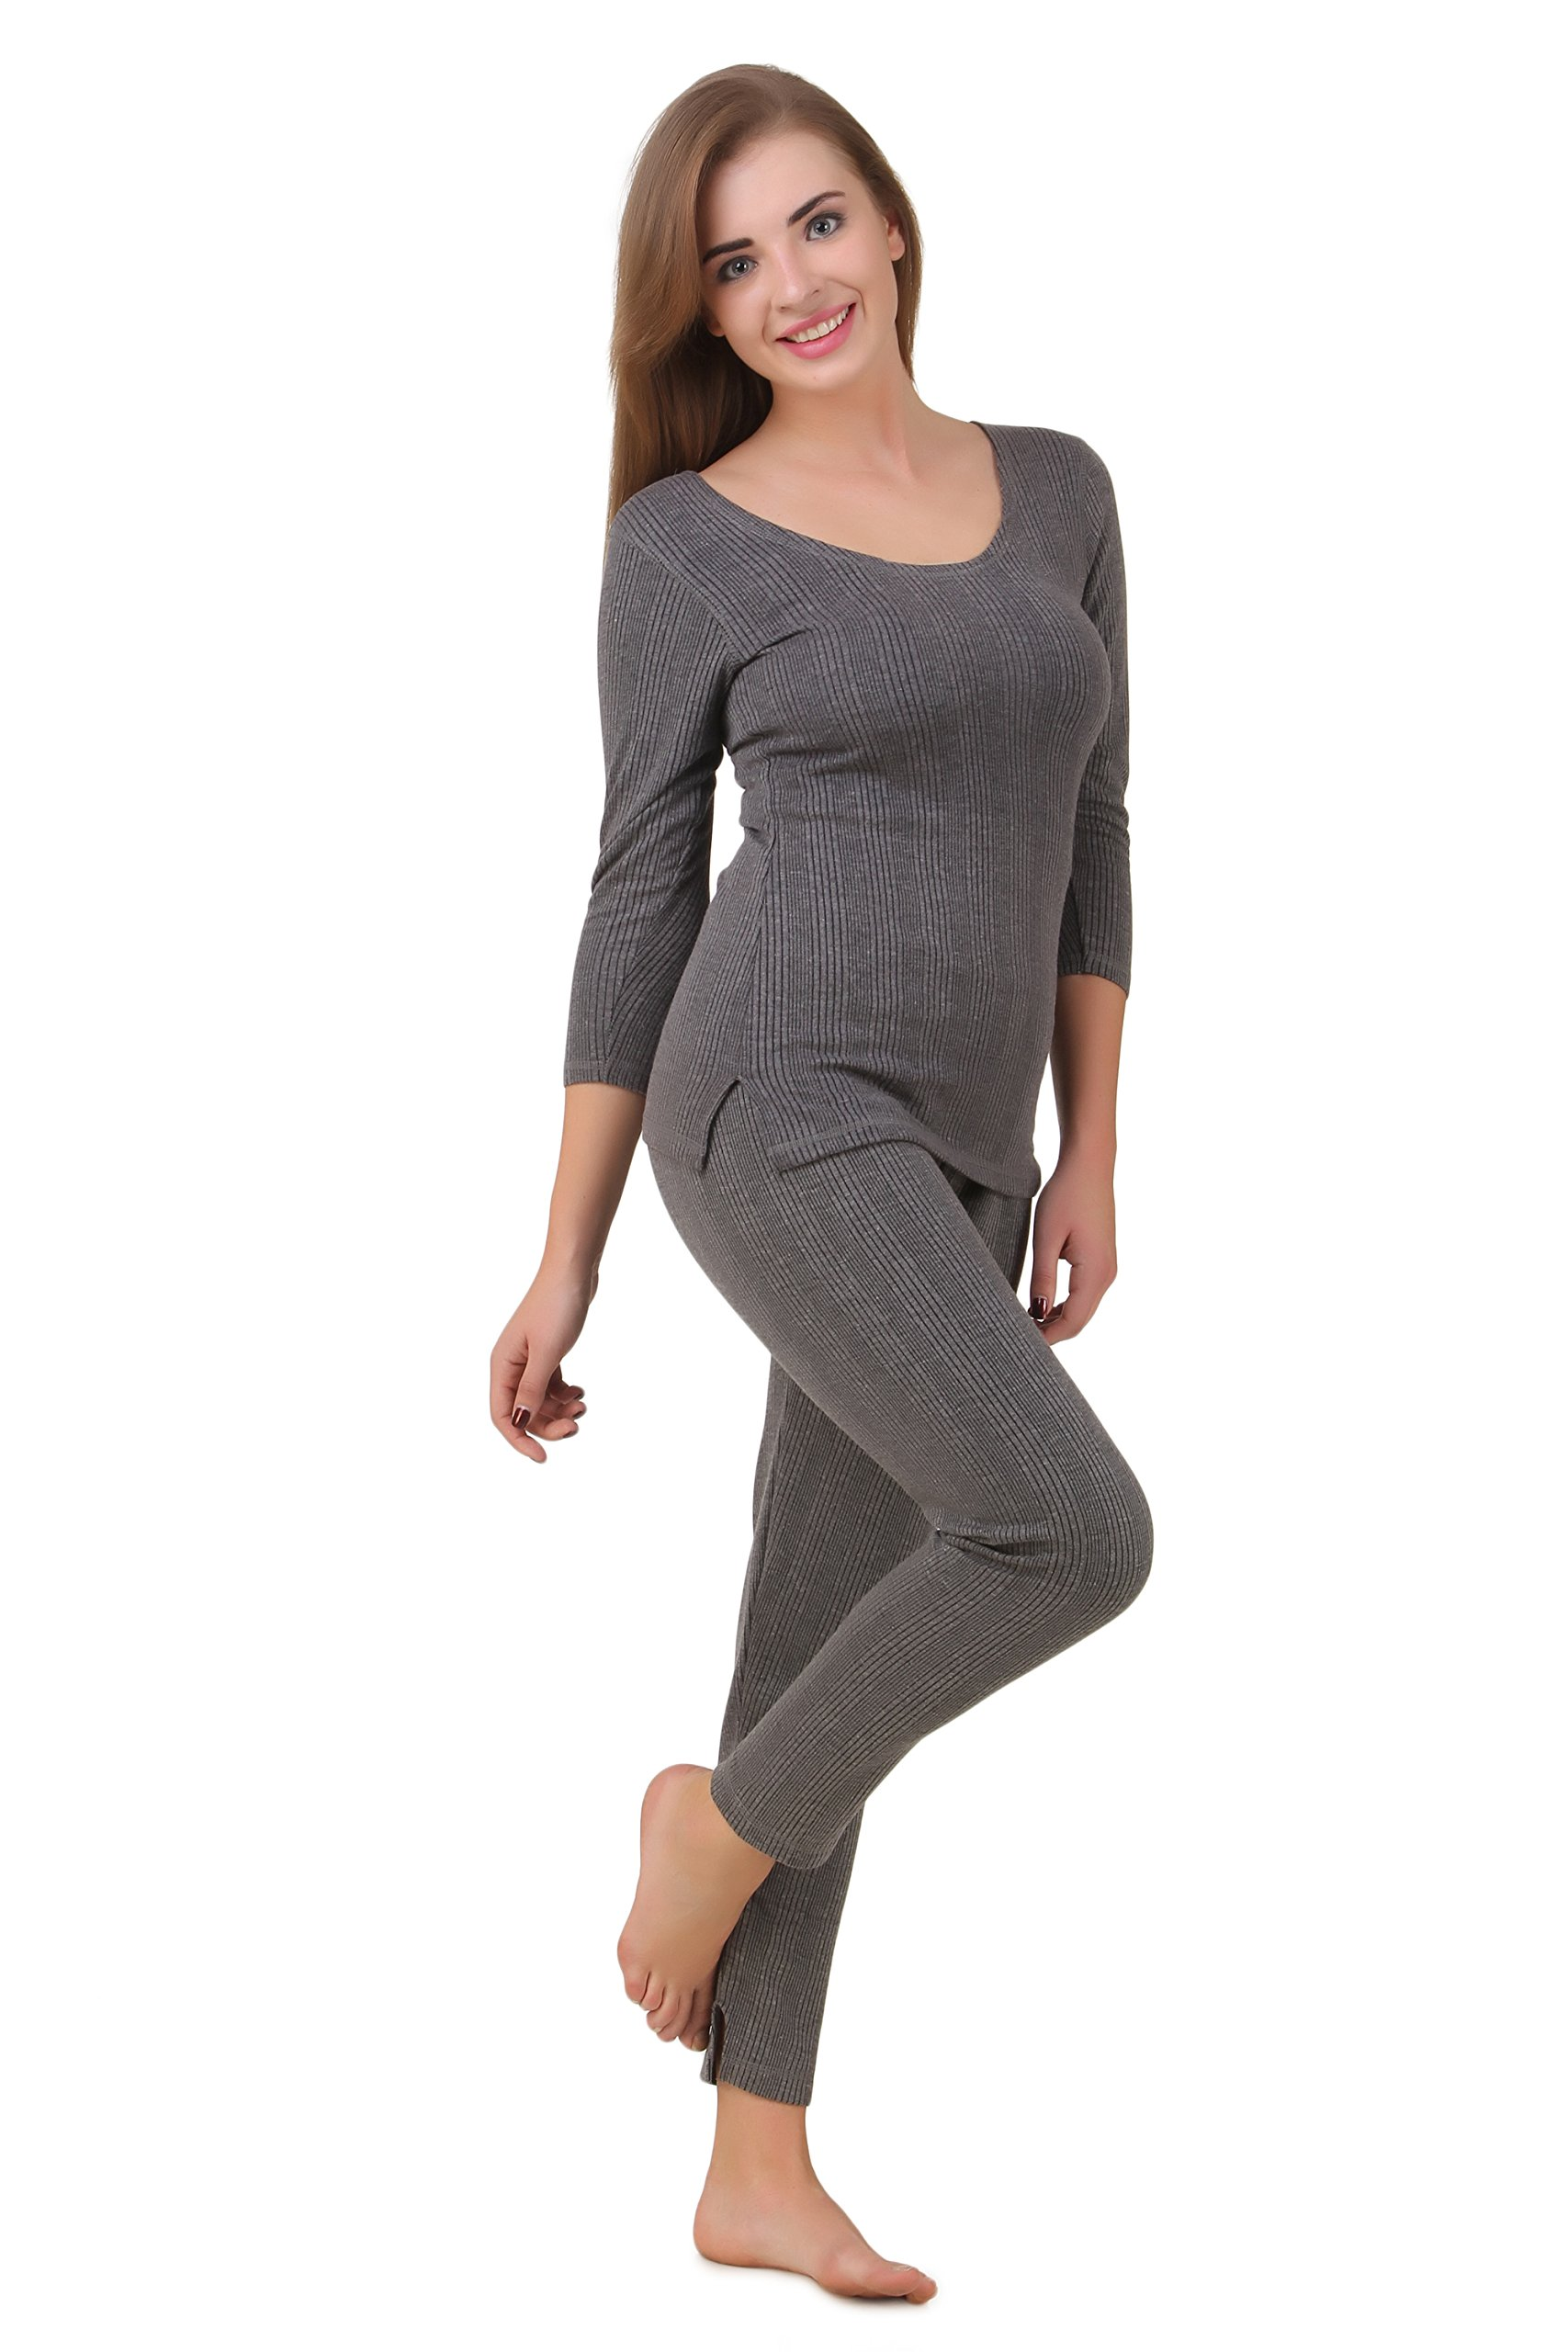 HAP Women's Poly Cotton Quilted Thermal Top, Trouser Set/Female Thermal/Ladies Thermal Set (Dark Grey)(Extra Extra Extra Large) 3XL (B01N3PHAJ9) Amazon Price History, Amazon Price Tracker